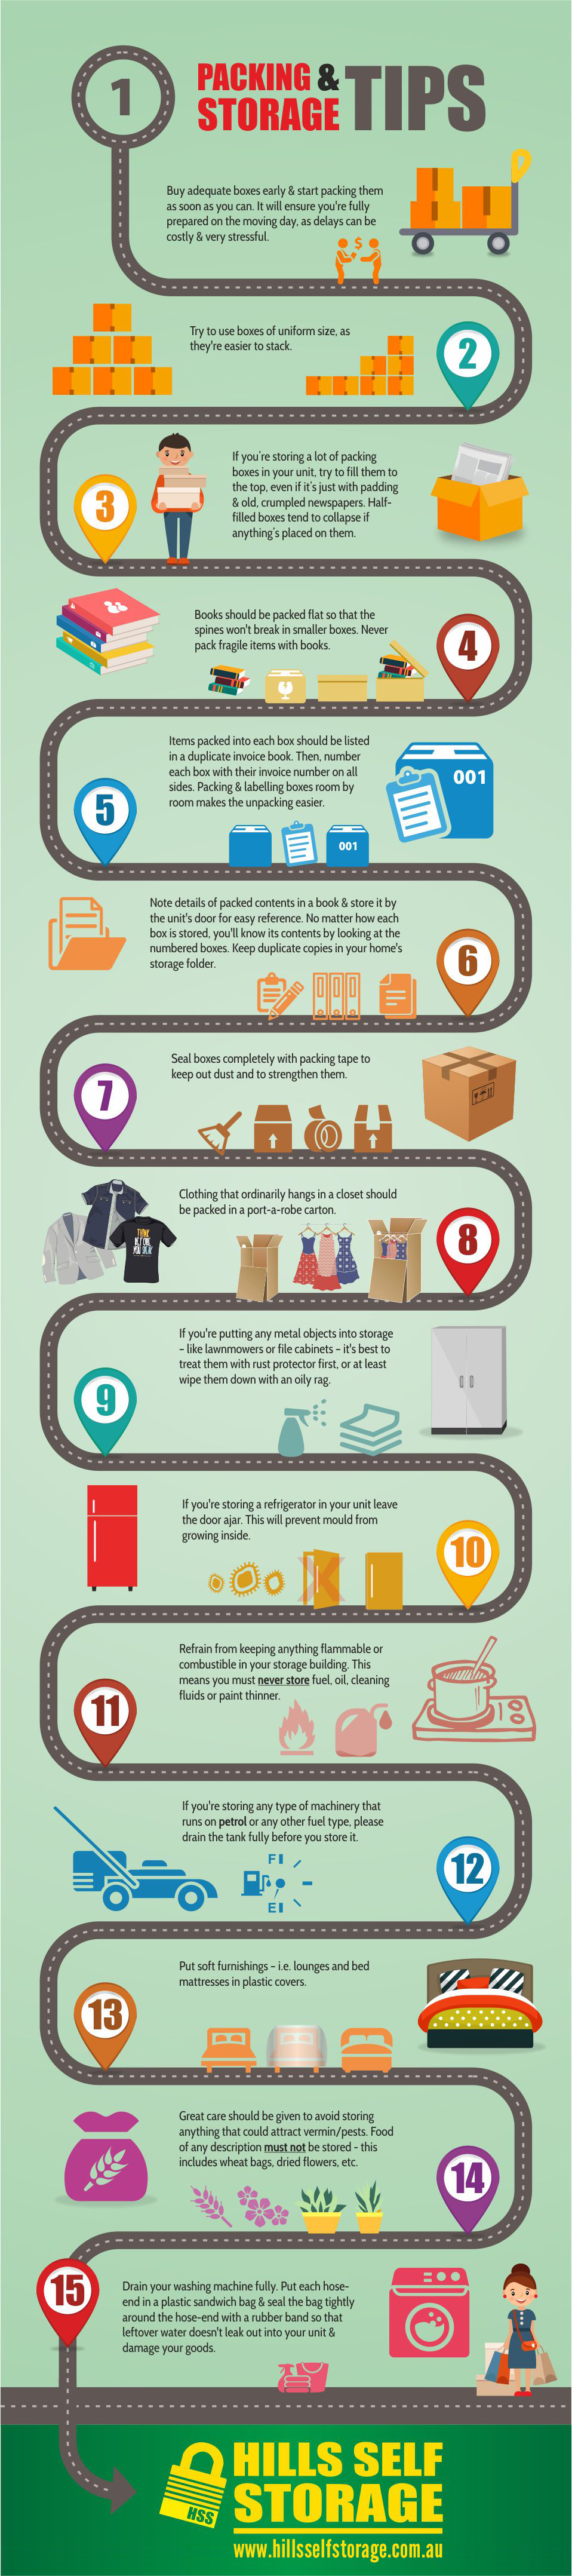 Packing & Storage Tips